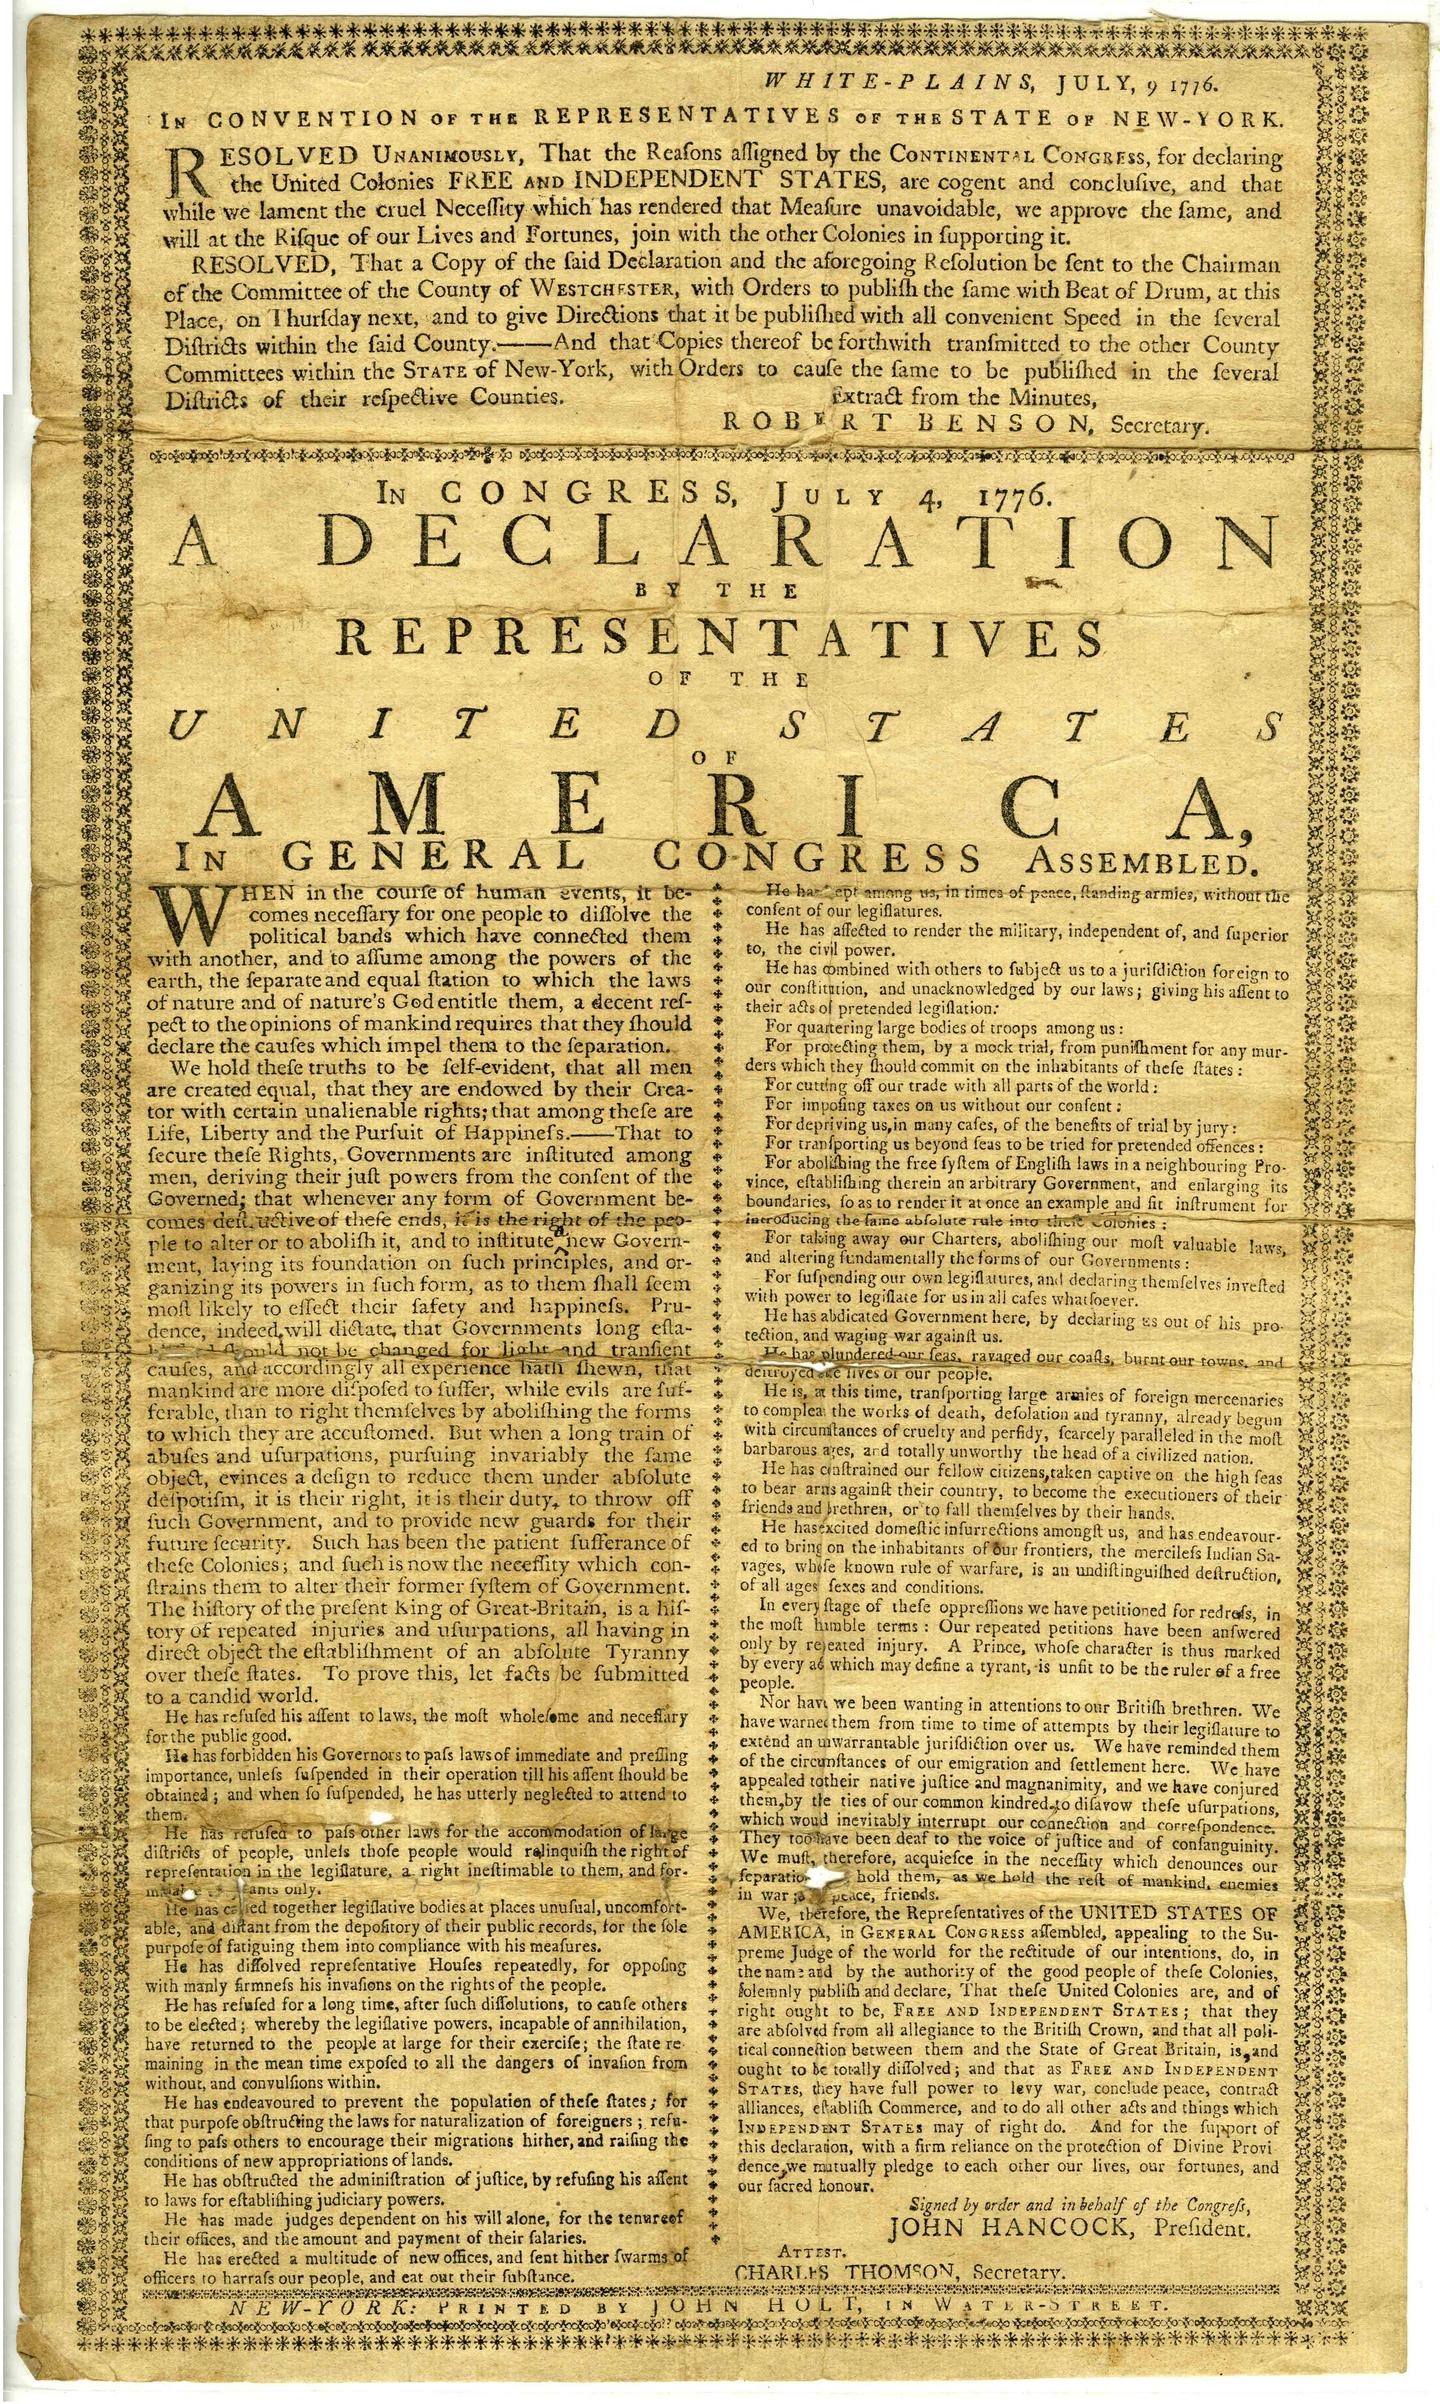 Textualists Cannot Ignore the Text: A Response to Mark Pulliam